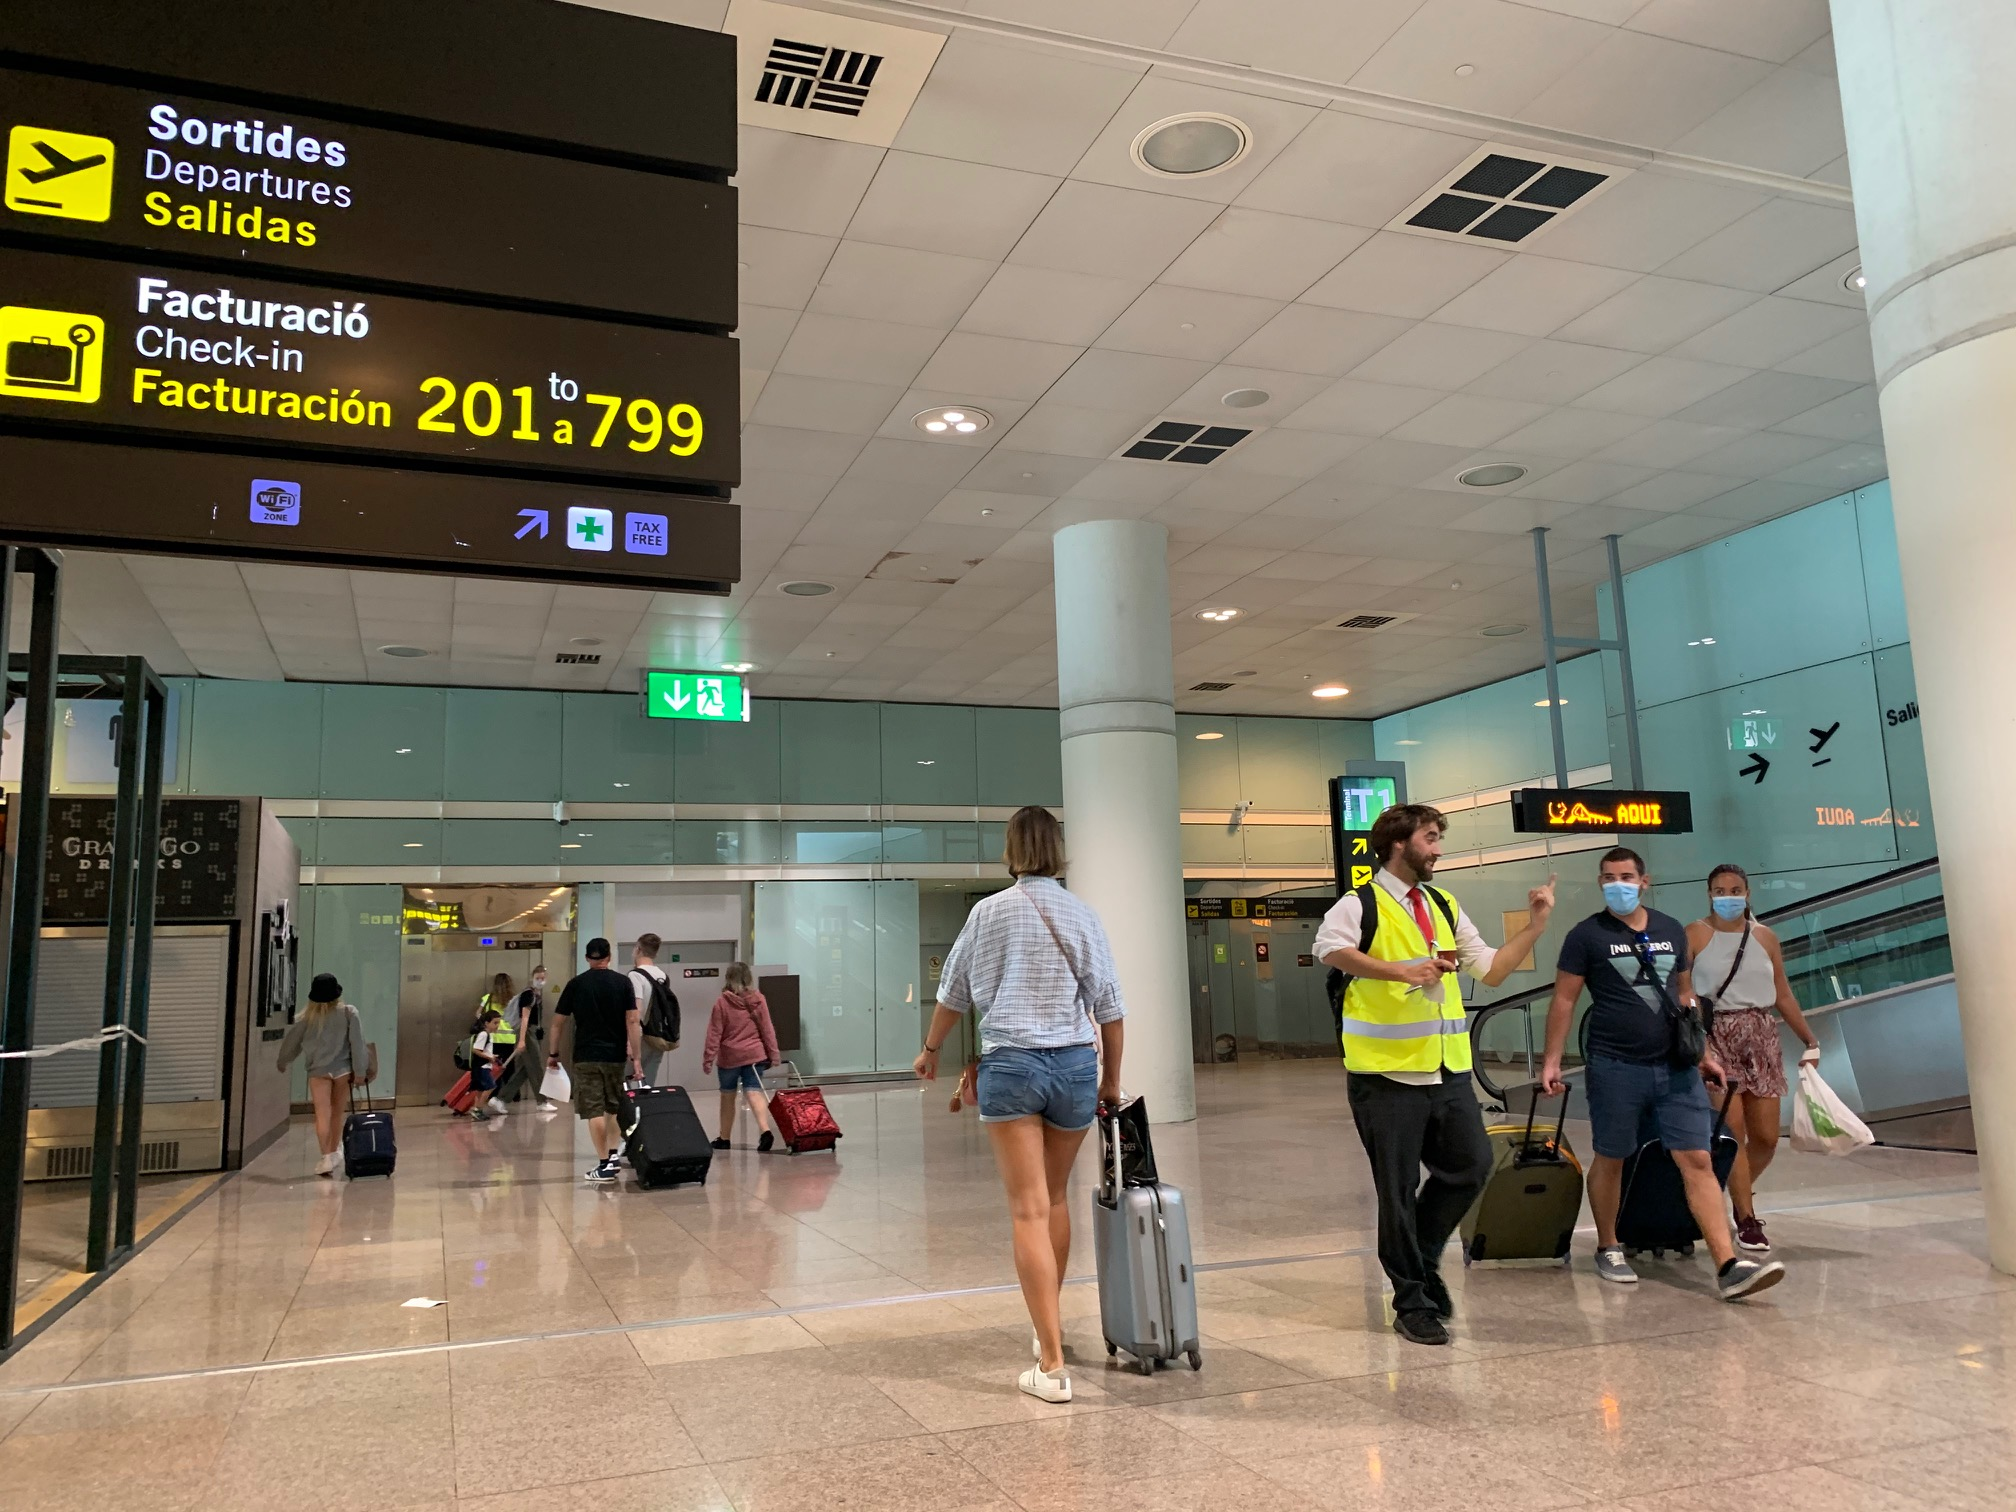 Tourists continue to arrive at Barcelona airport despite the government's recommendations.